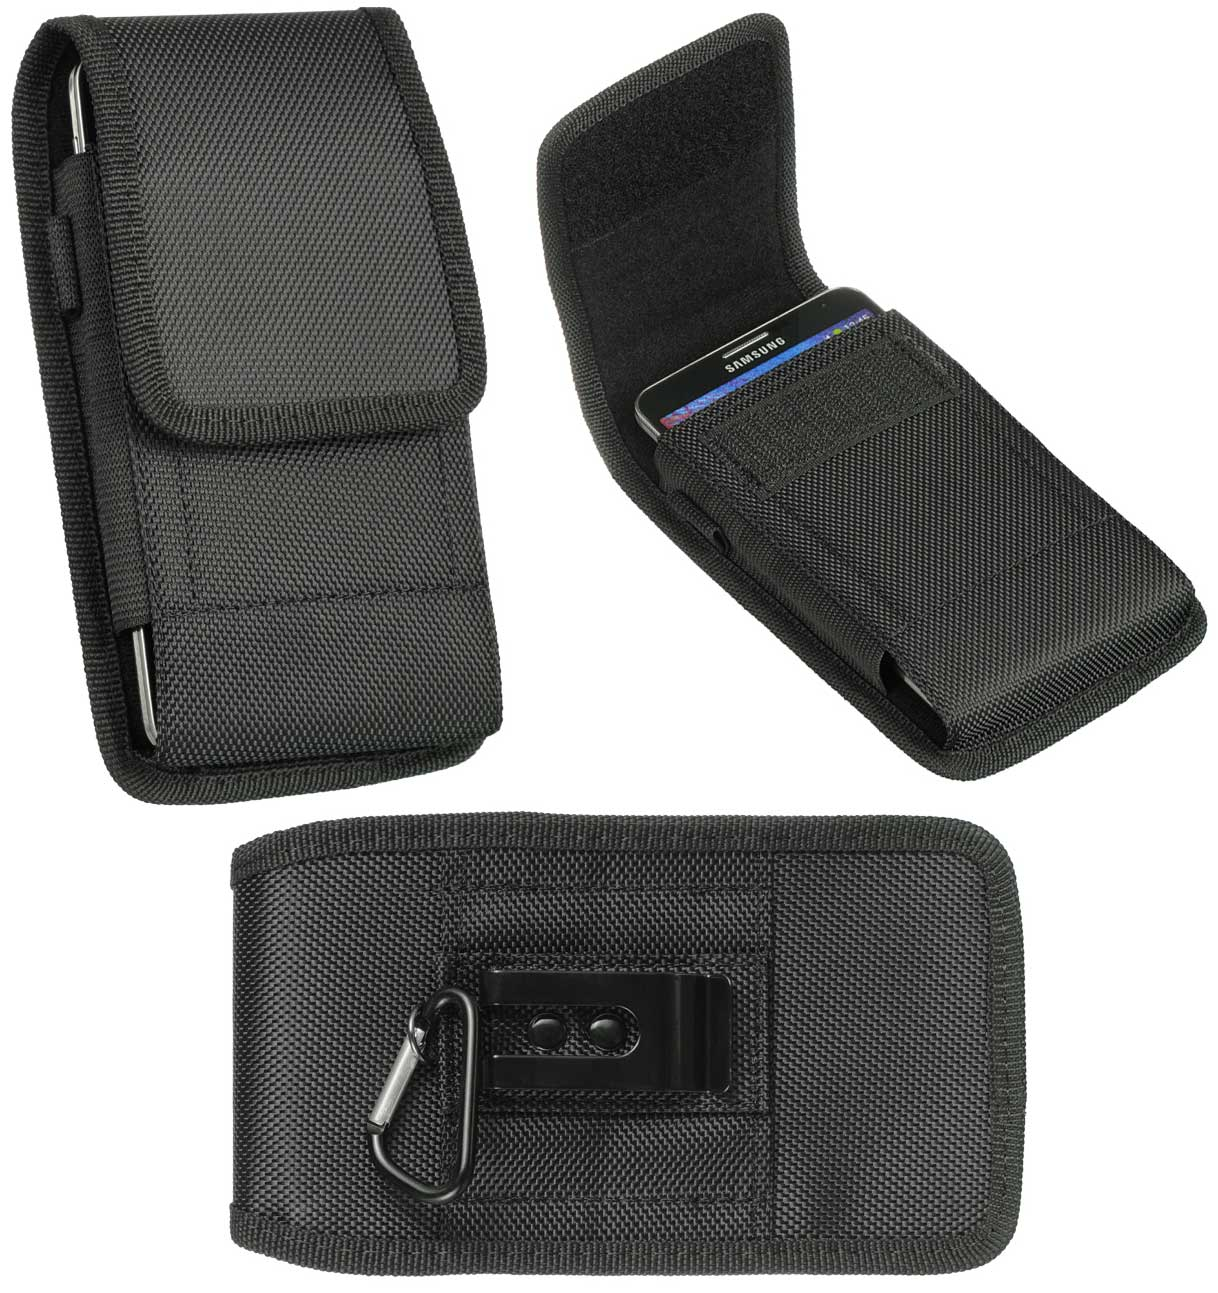 Samsung Galaxy S9 Plus Neoprene Nylon Case Pouch Clip Hook Black